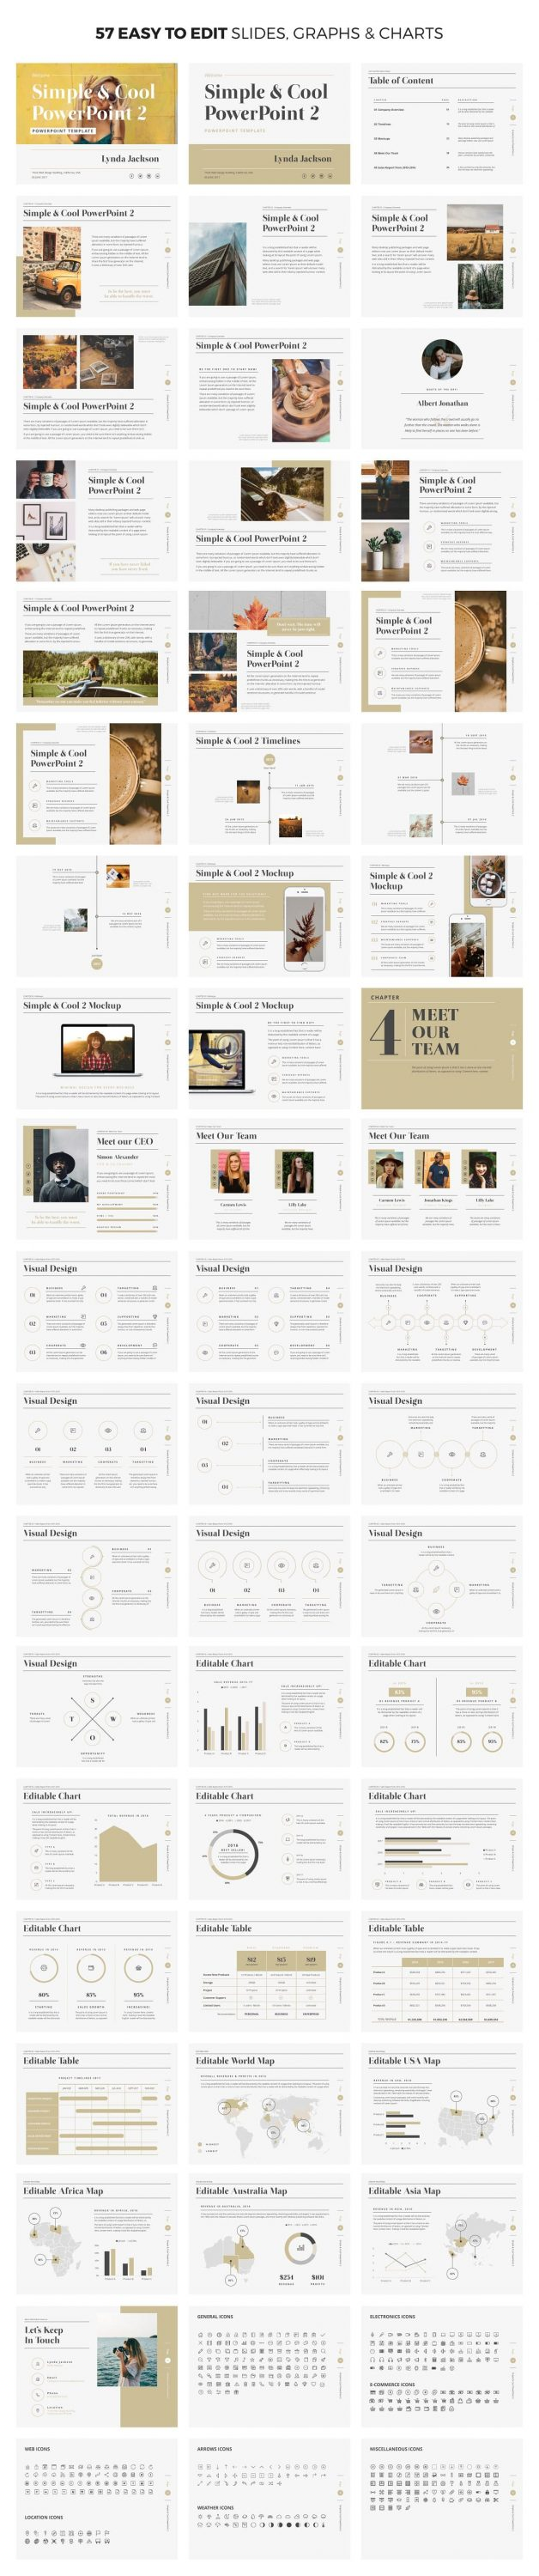 57 easy to customize slides Simple & Cool PowerPoint Template 2.